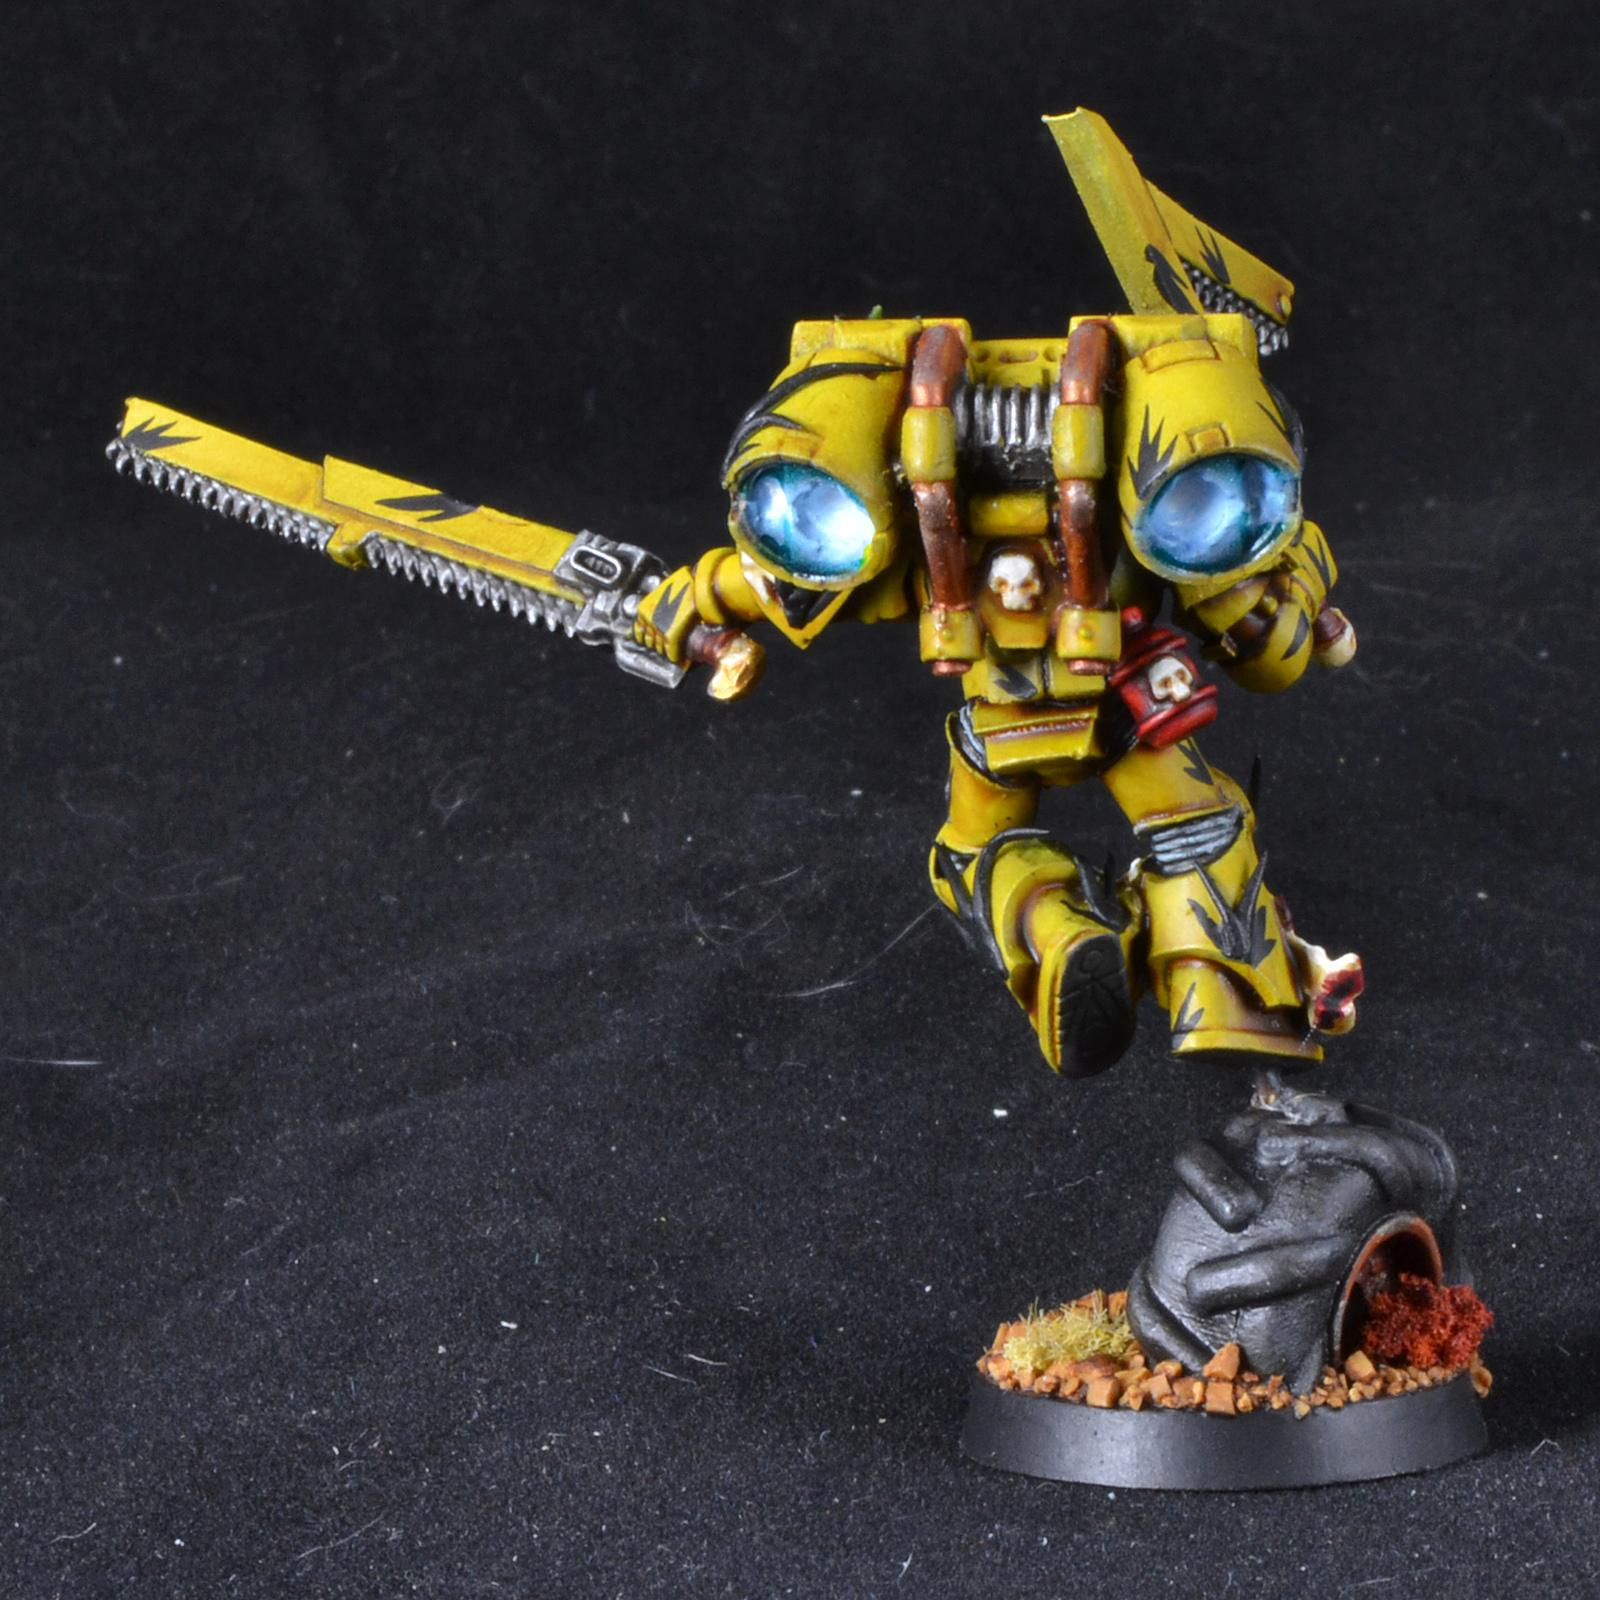 Gms, Mantis Warrior, Object Source Lighting, Space Marines, Tranquility Camo, Vanguard, Warhammer 40,000